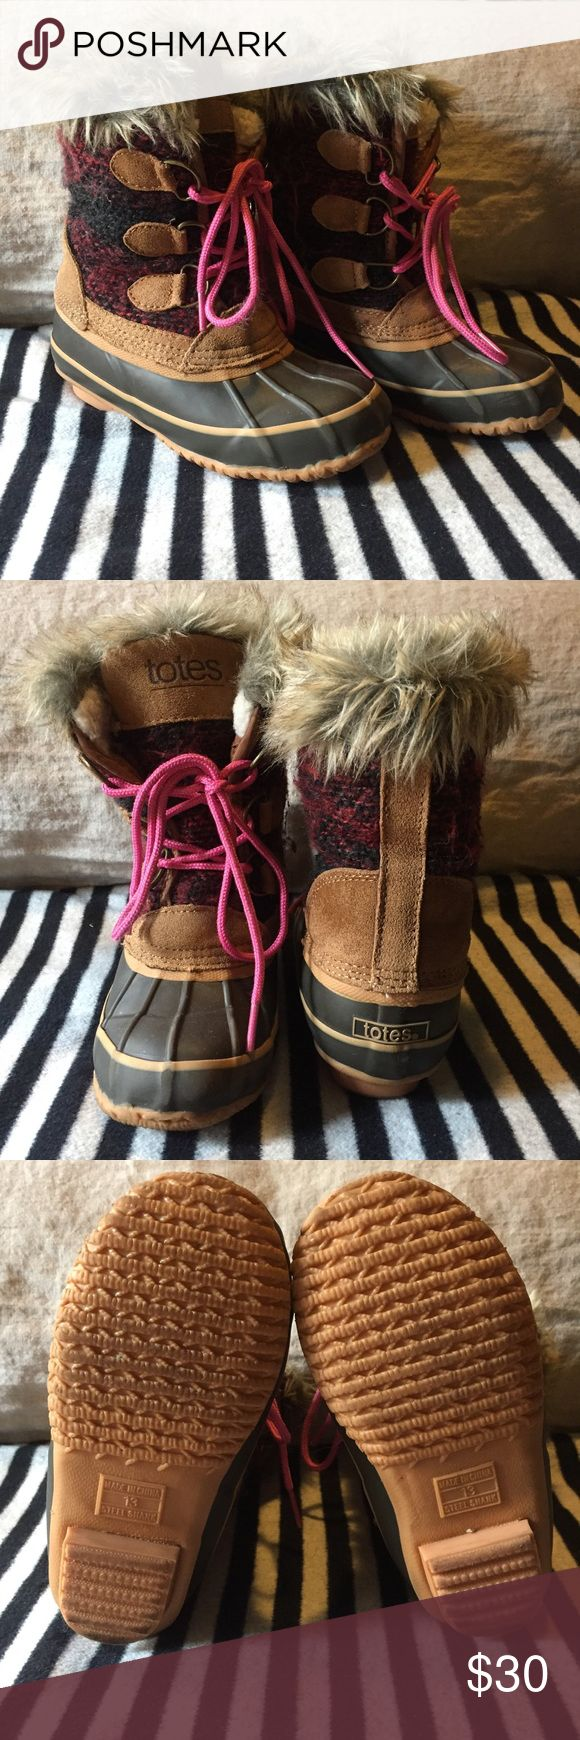 Totes Winter Boots Totes Winter/Snow Boots with faux fur and fleece lining. Duck style boots with plaid pattern in gently used condition. Plenty of wear left! Size 13. Shoes Rain & Snow Boots